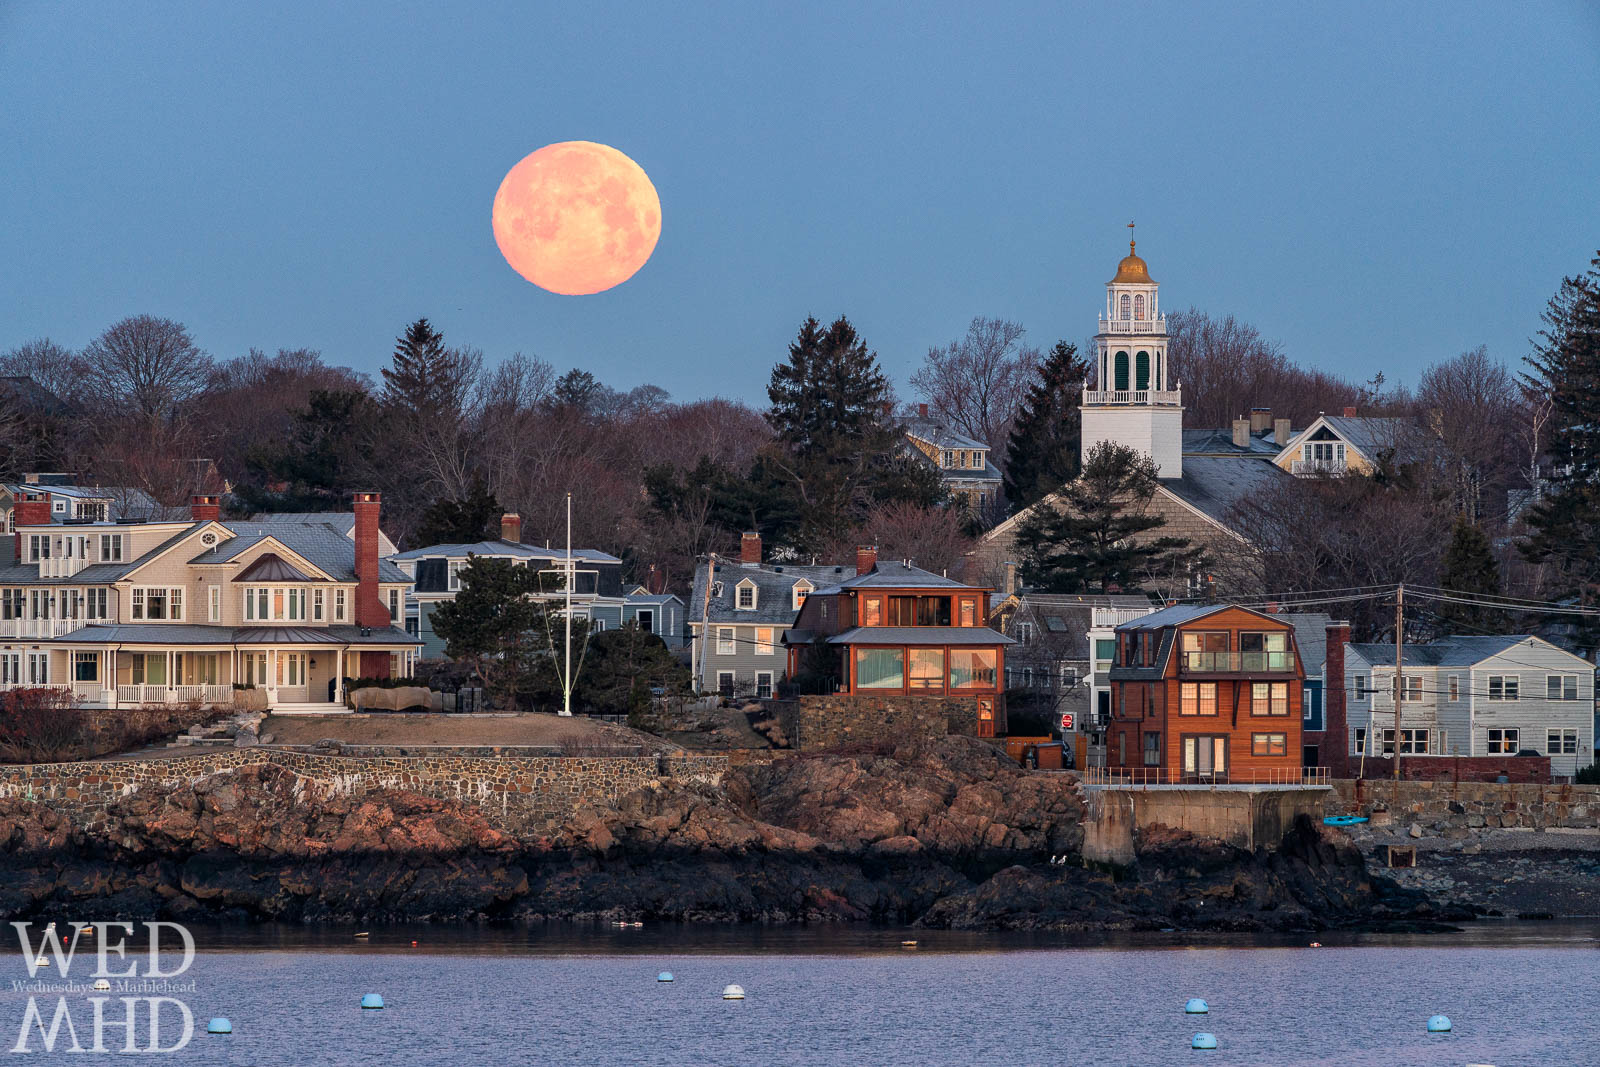 The full vernal worm moon sets beside Old North Church in Marblehead